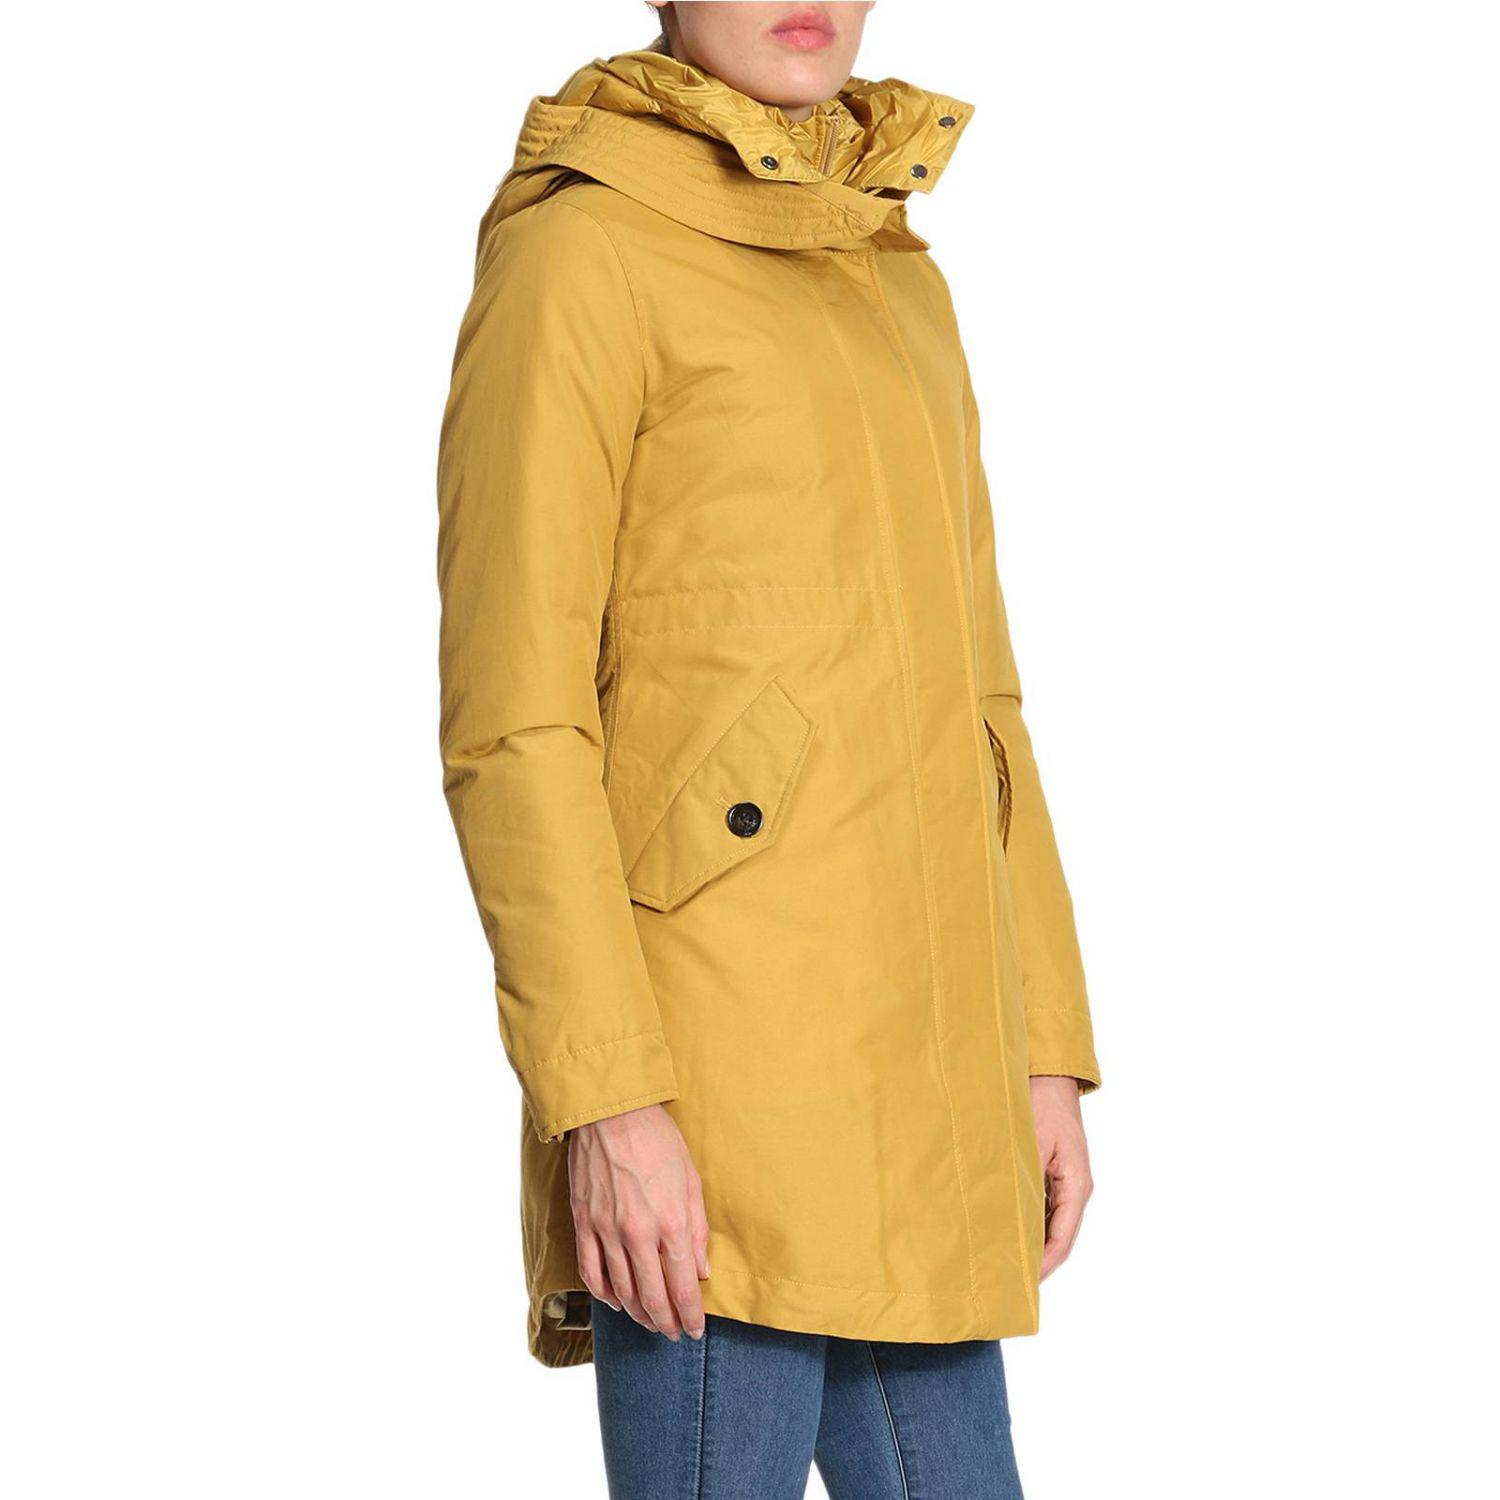 yellow jacket cougar women Shop high-quality columbia women's jackets yellow 1 take on mother nature wrapped in the warmth of a high-quality columbia women's jacket that's.